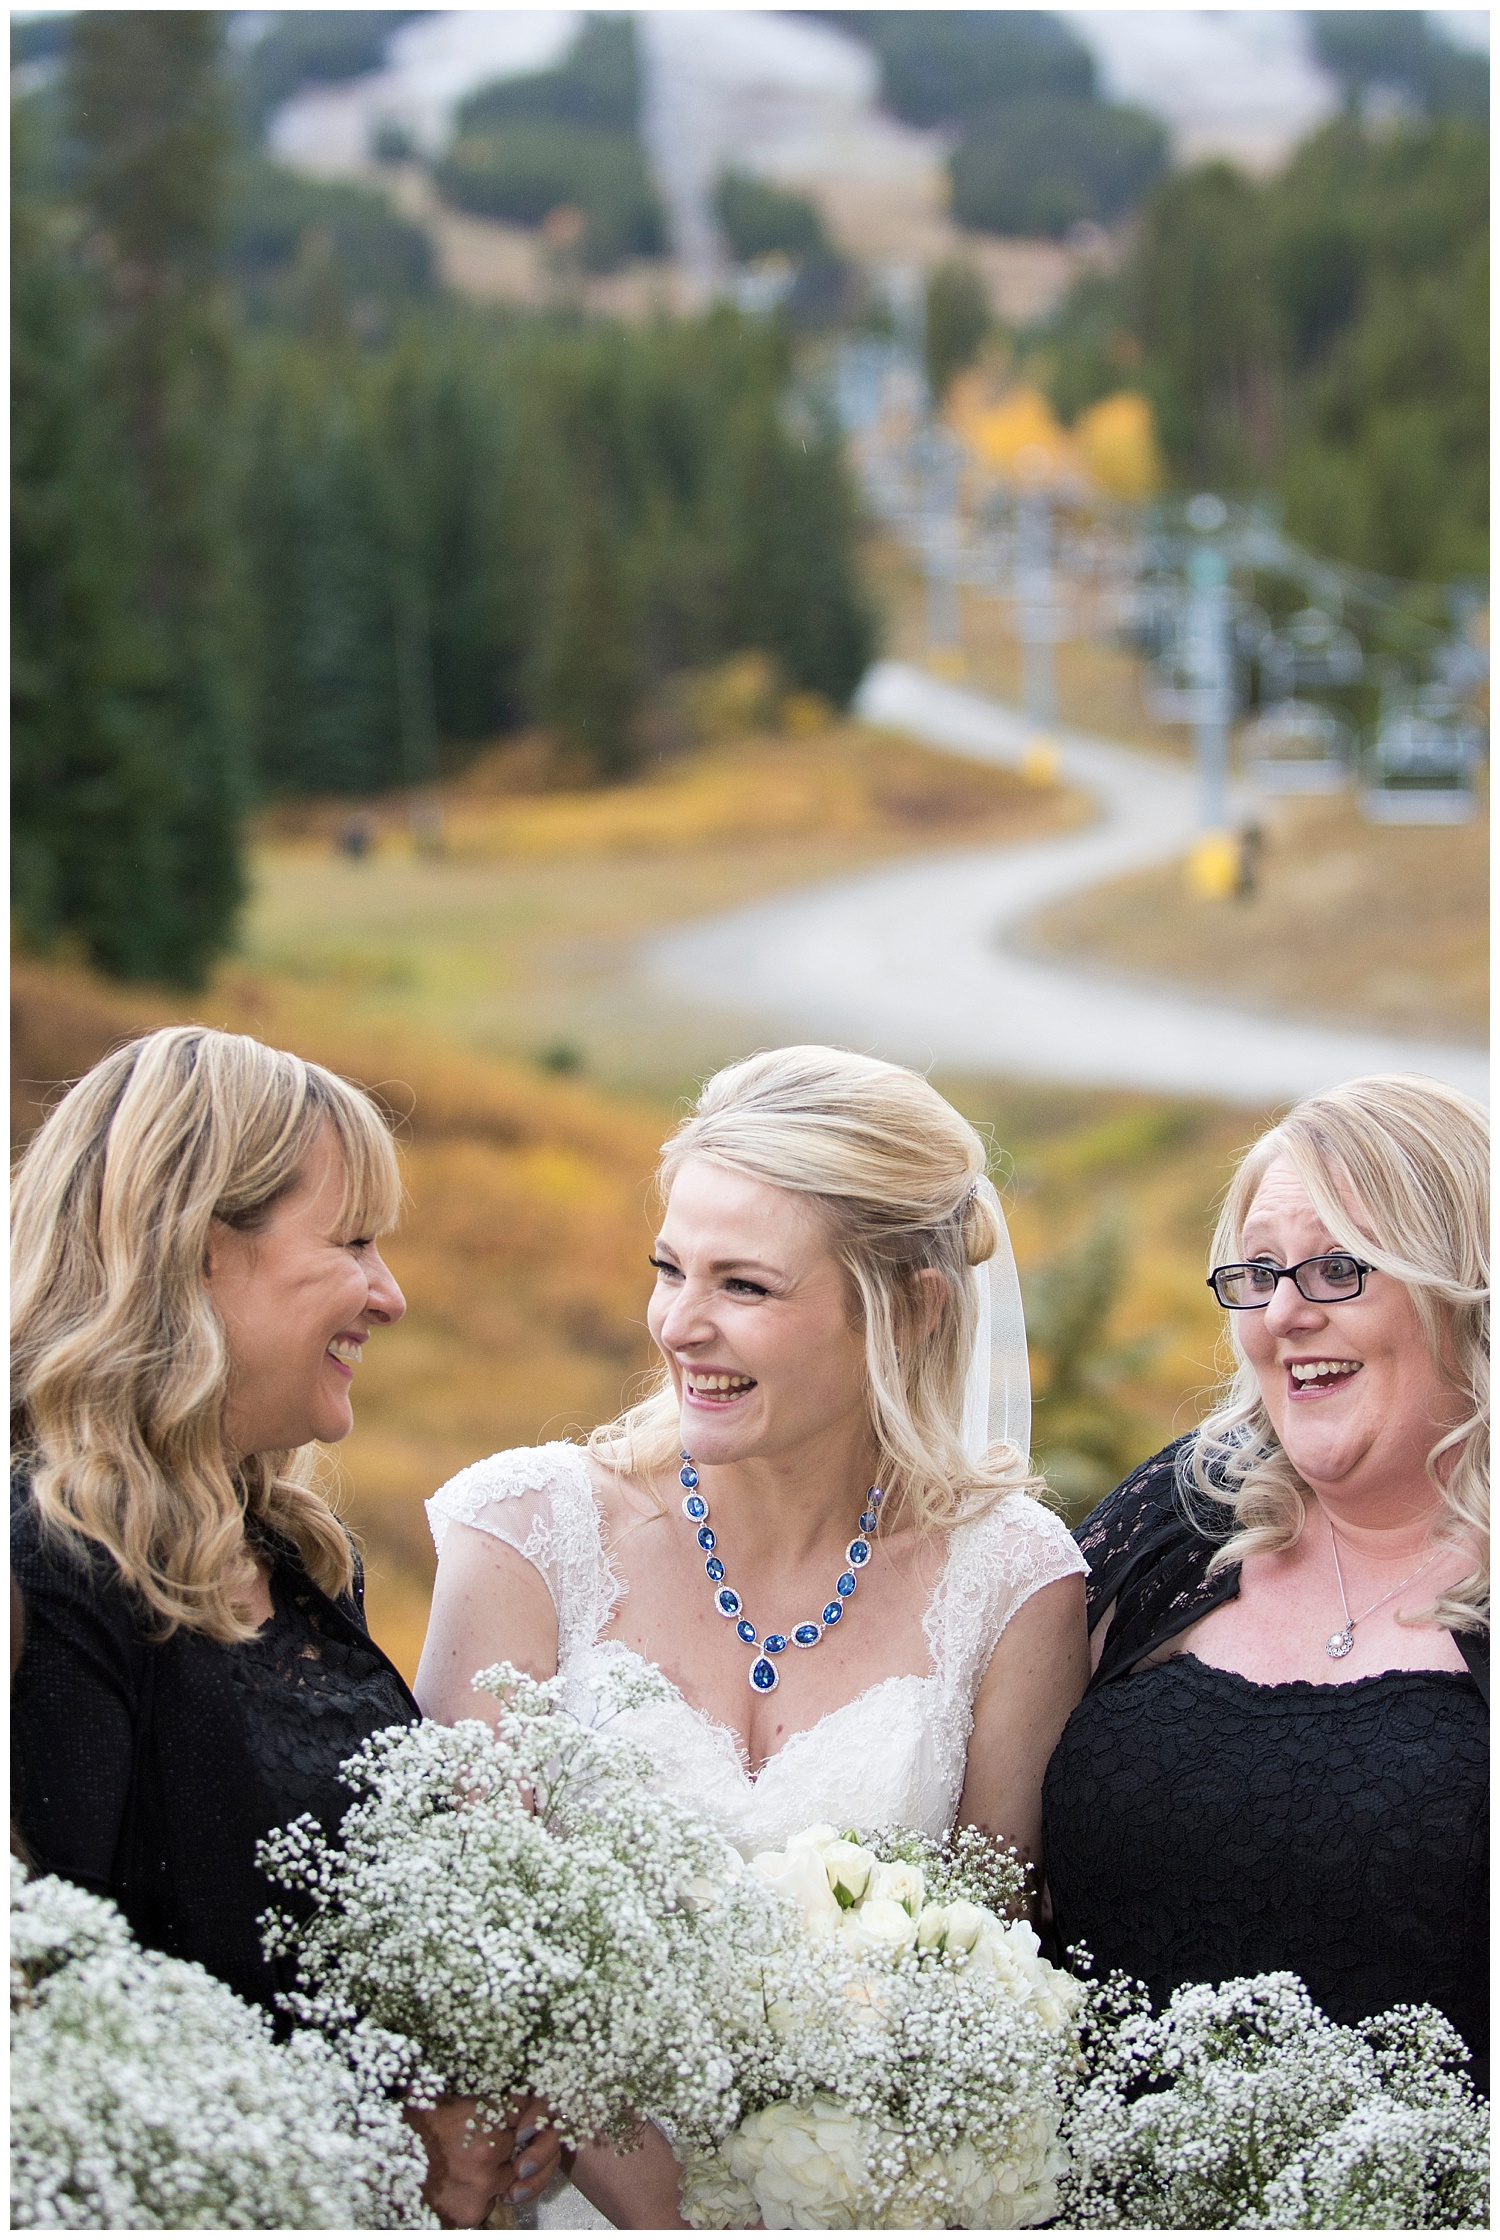 Ten Mile Station Bridal Party | Chris & Destiny's Destination Wedding | Breckenridge Wedding Photographer | Colorado Farm Wedding Photographer | Apollo Fields Wedding Photojournalism